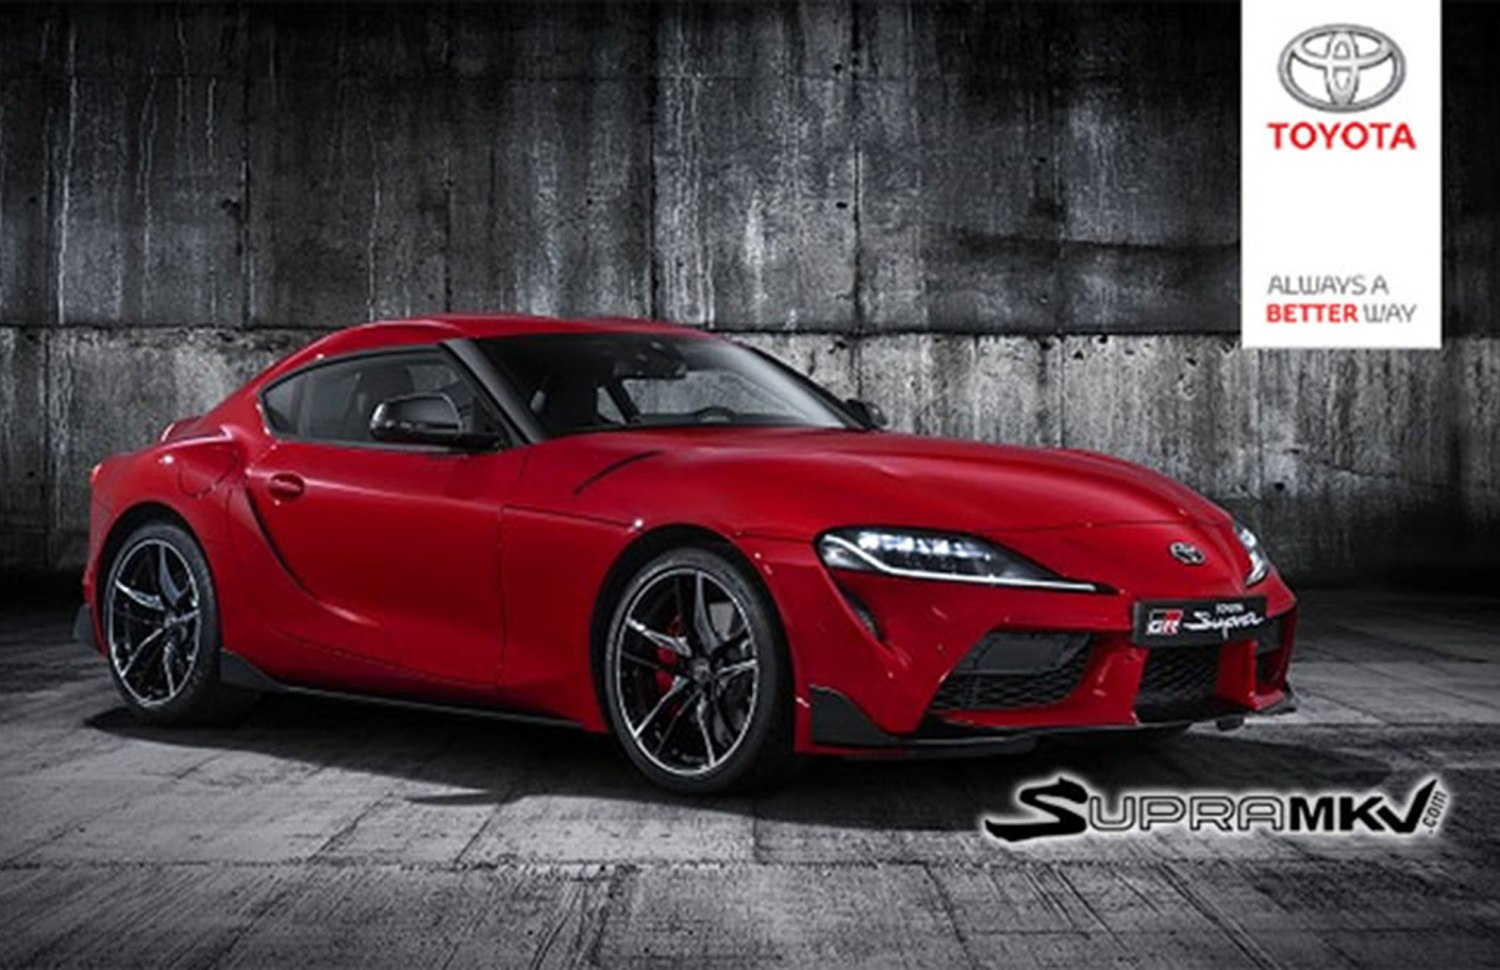 2019 Toyota A90 Supra Leaked Images Reveal